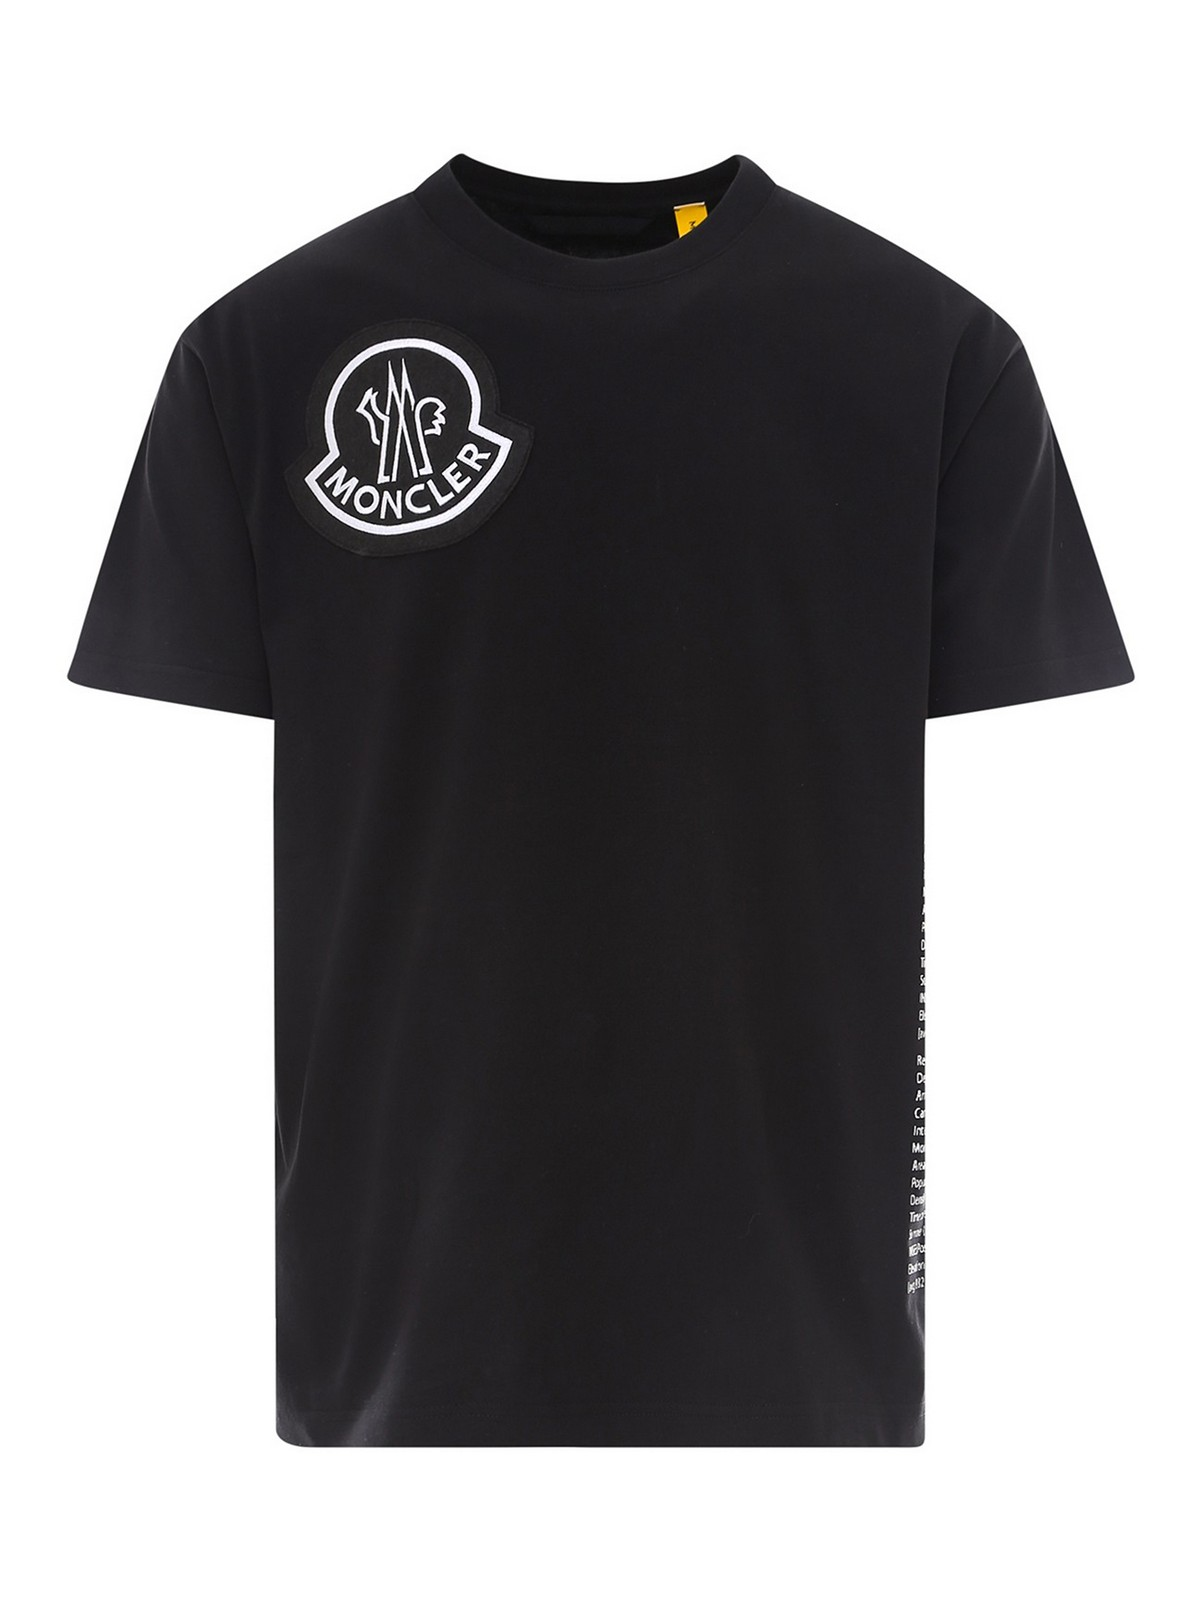 Moncler T-SHIRT WITH PATCHED LOGO